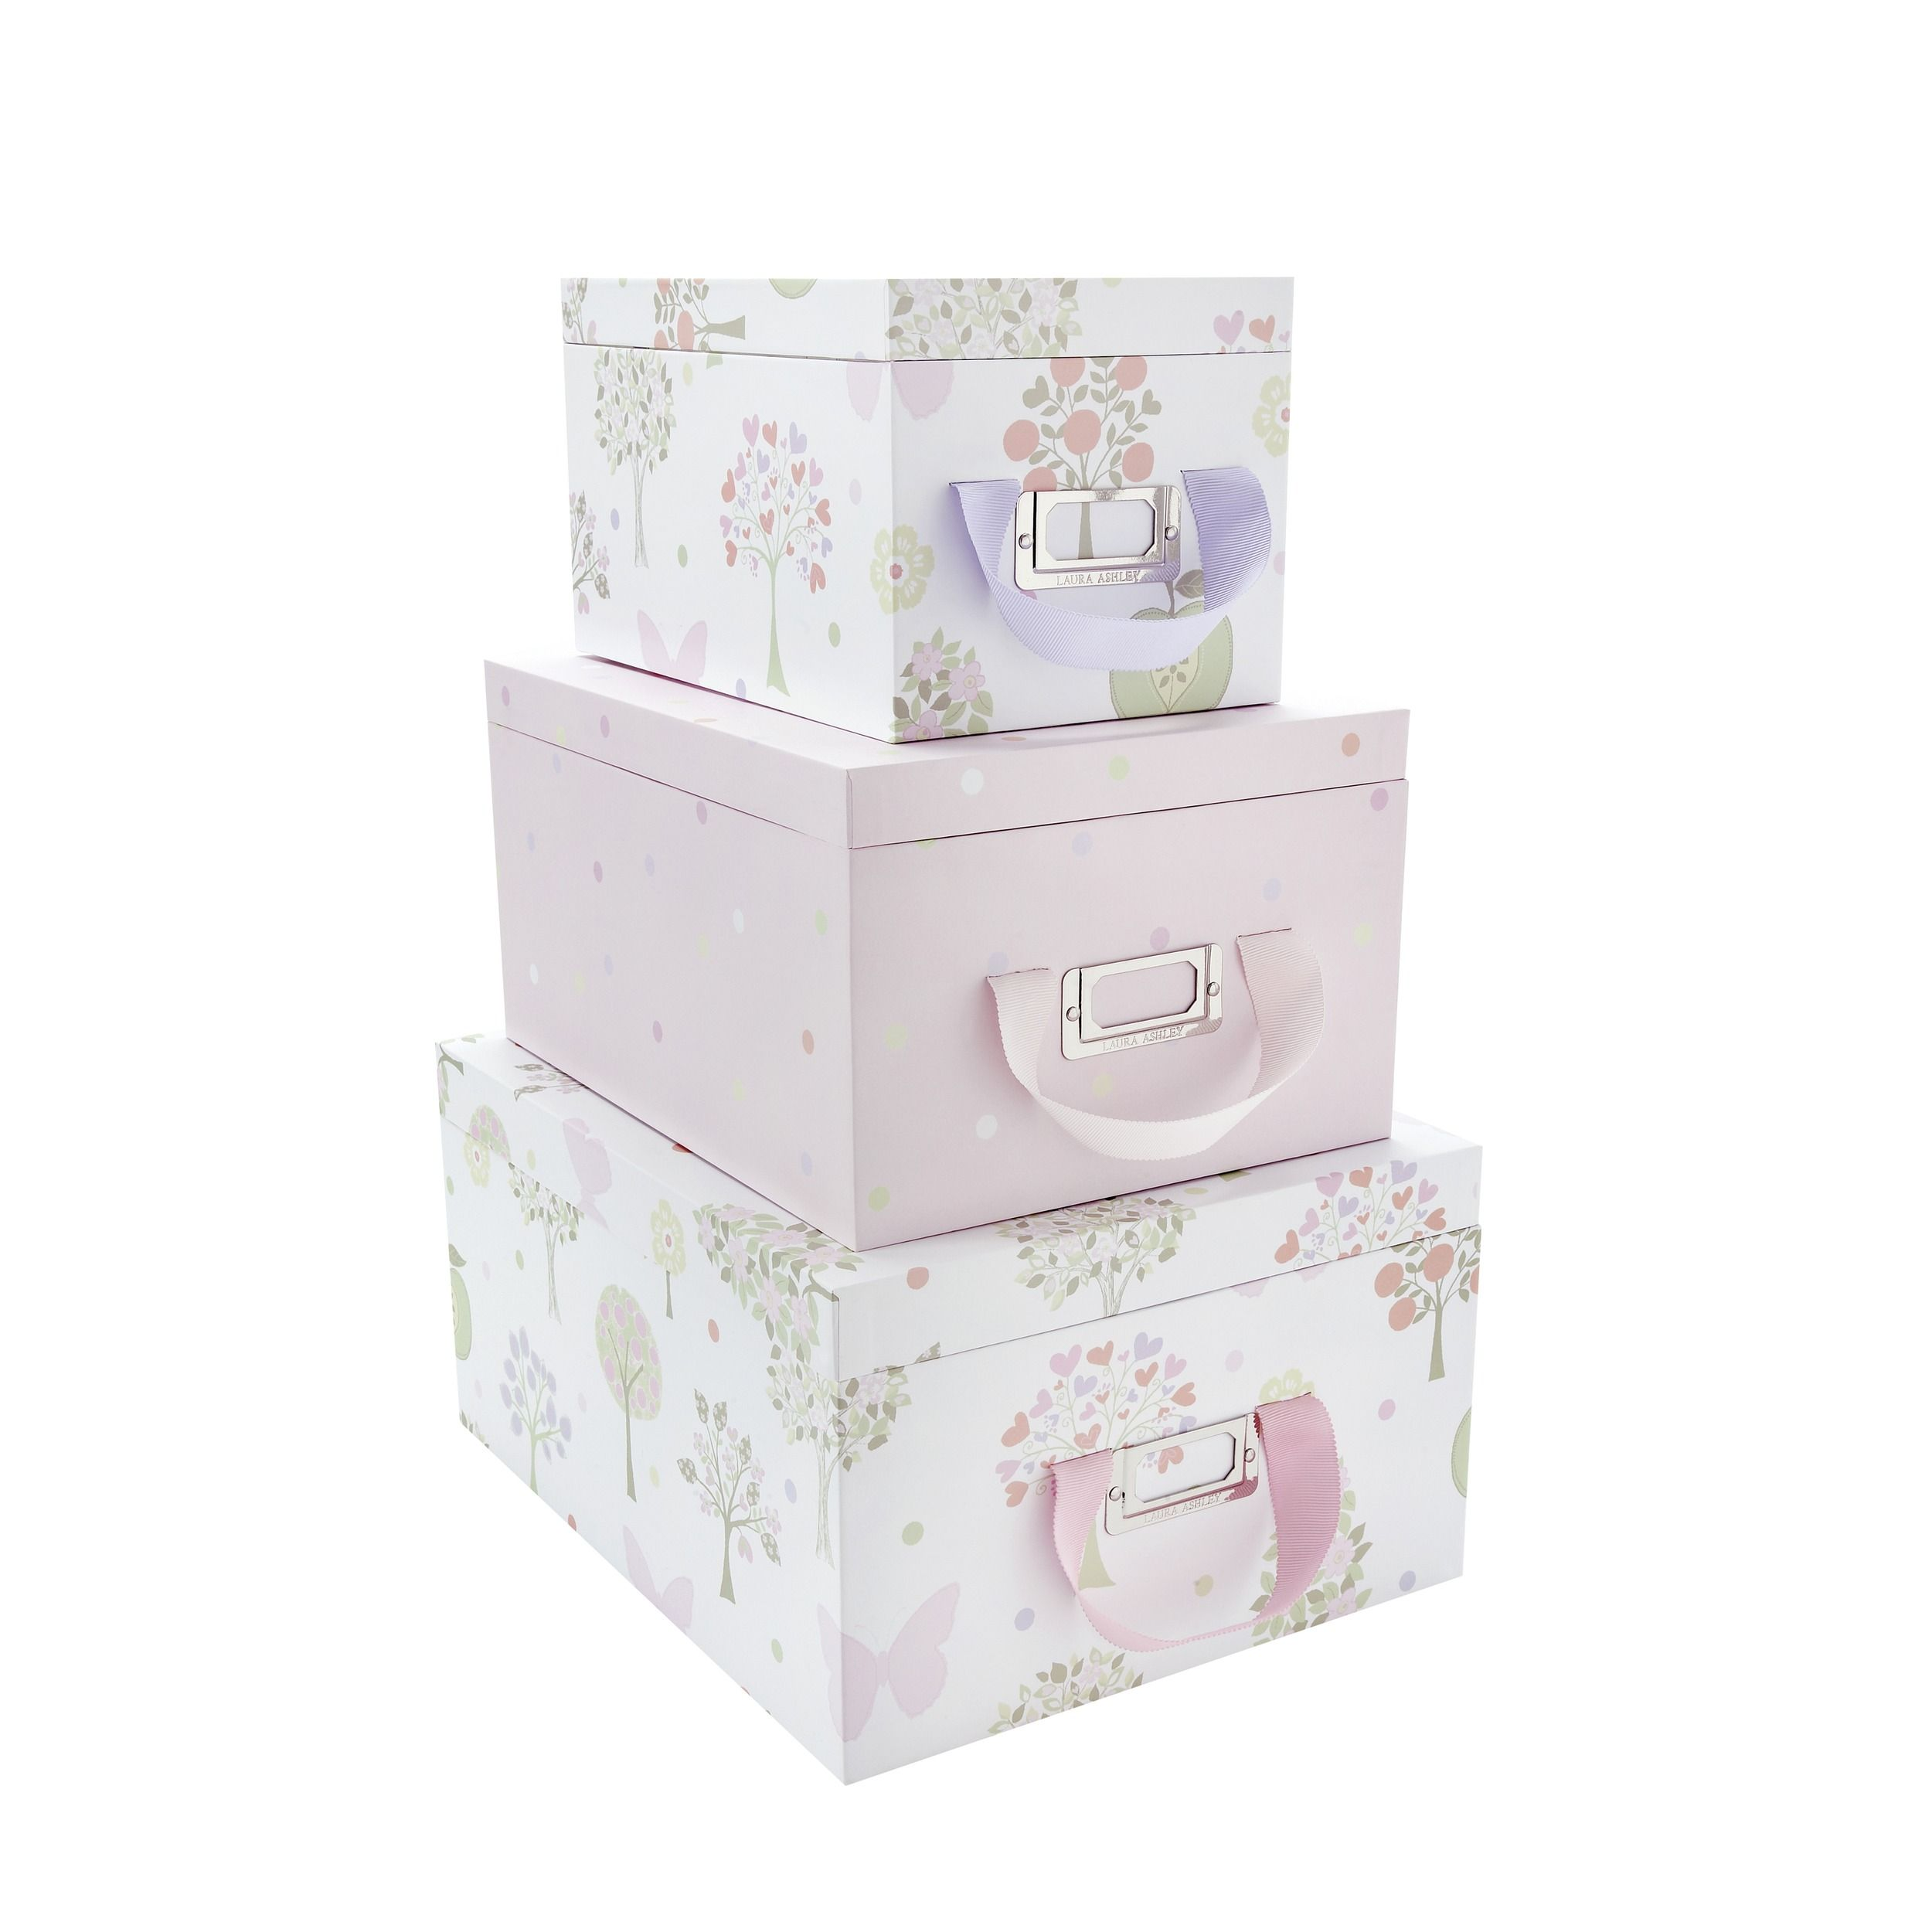 decorative decor lids comfortable with stacked storage colored interior boxes brightly and modern handle cardboard box